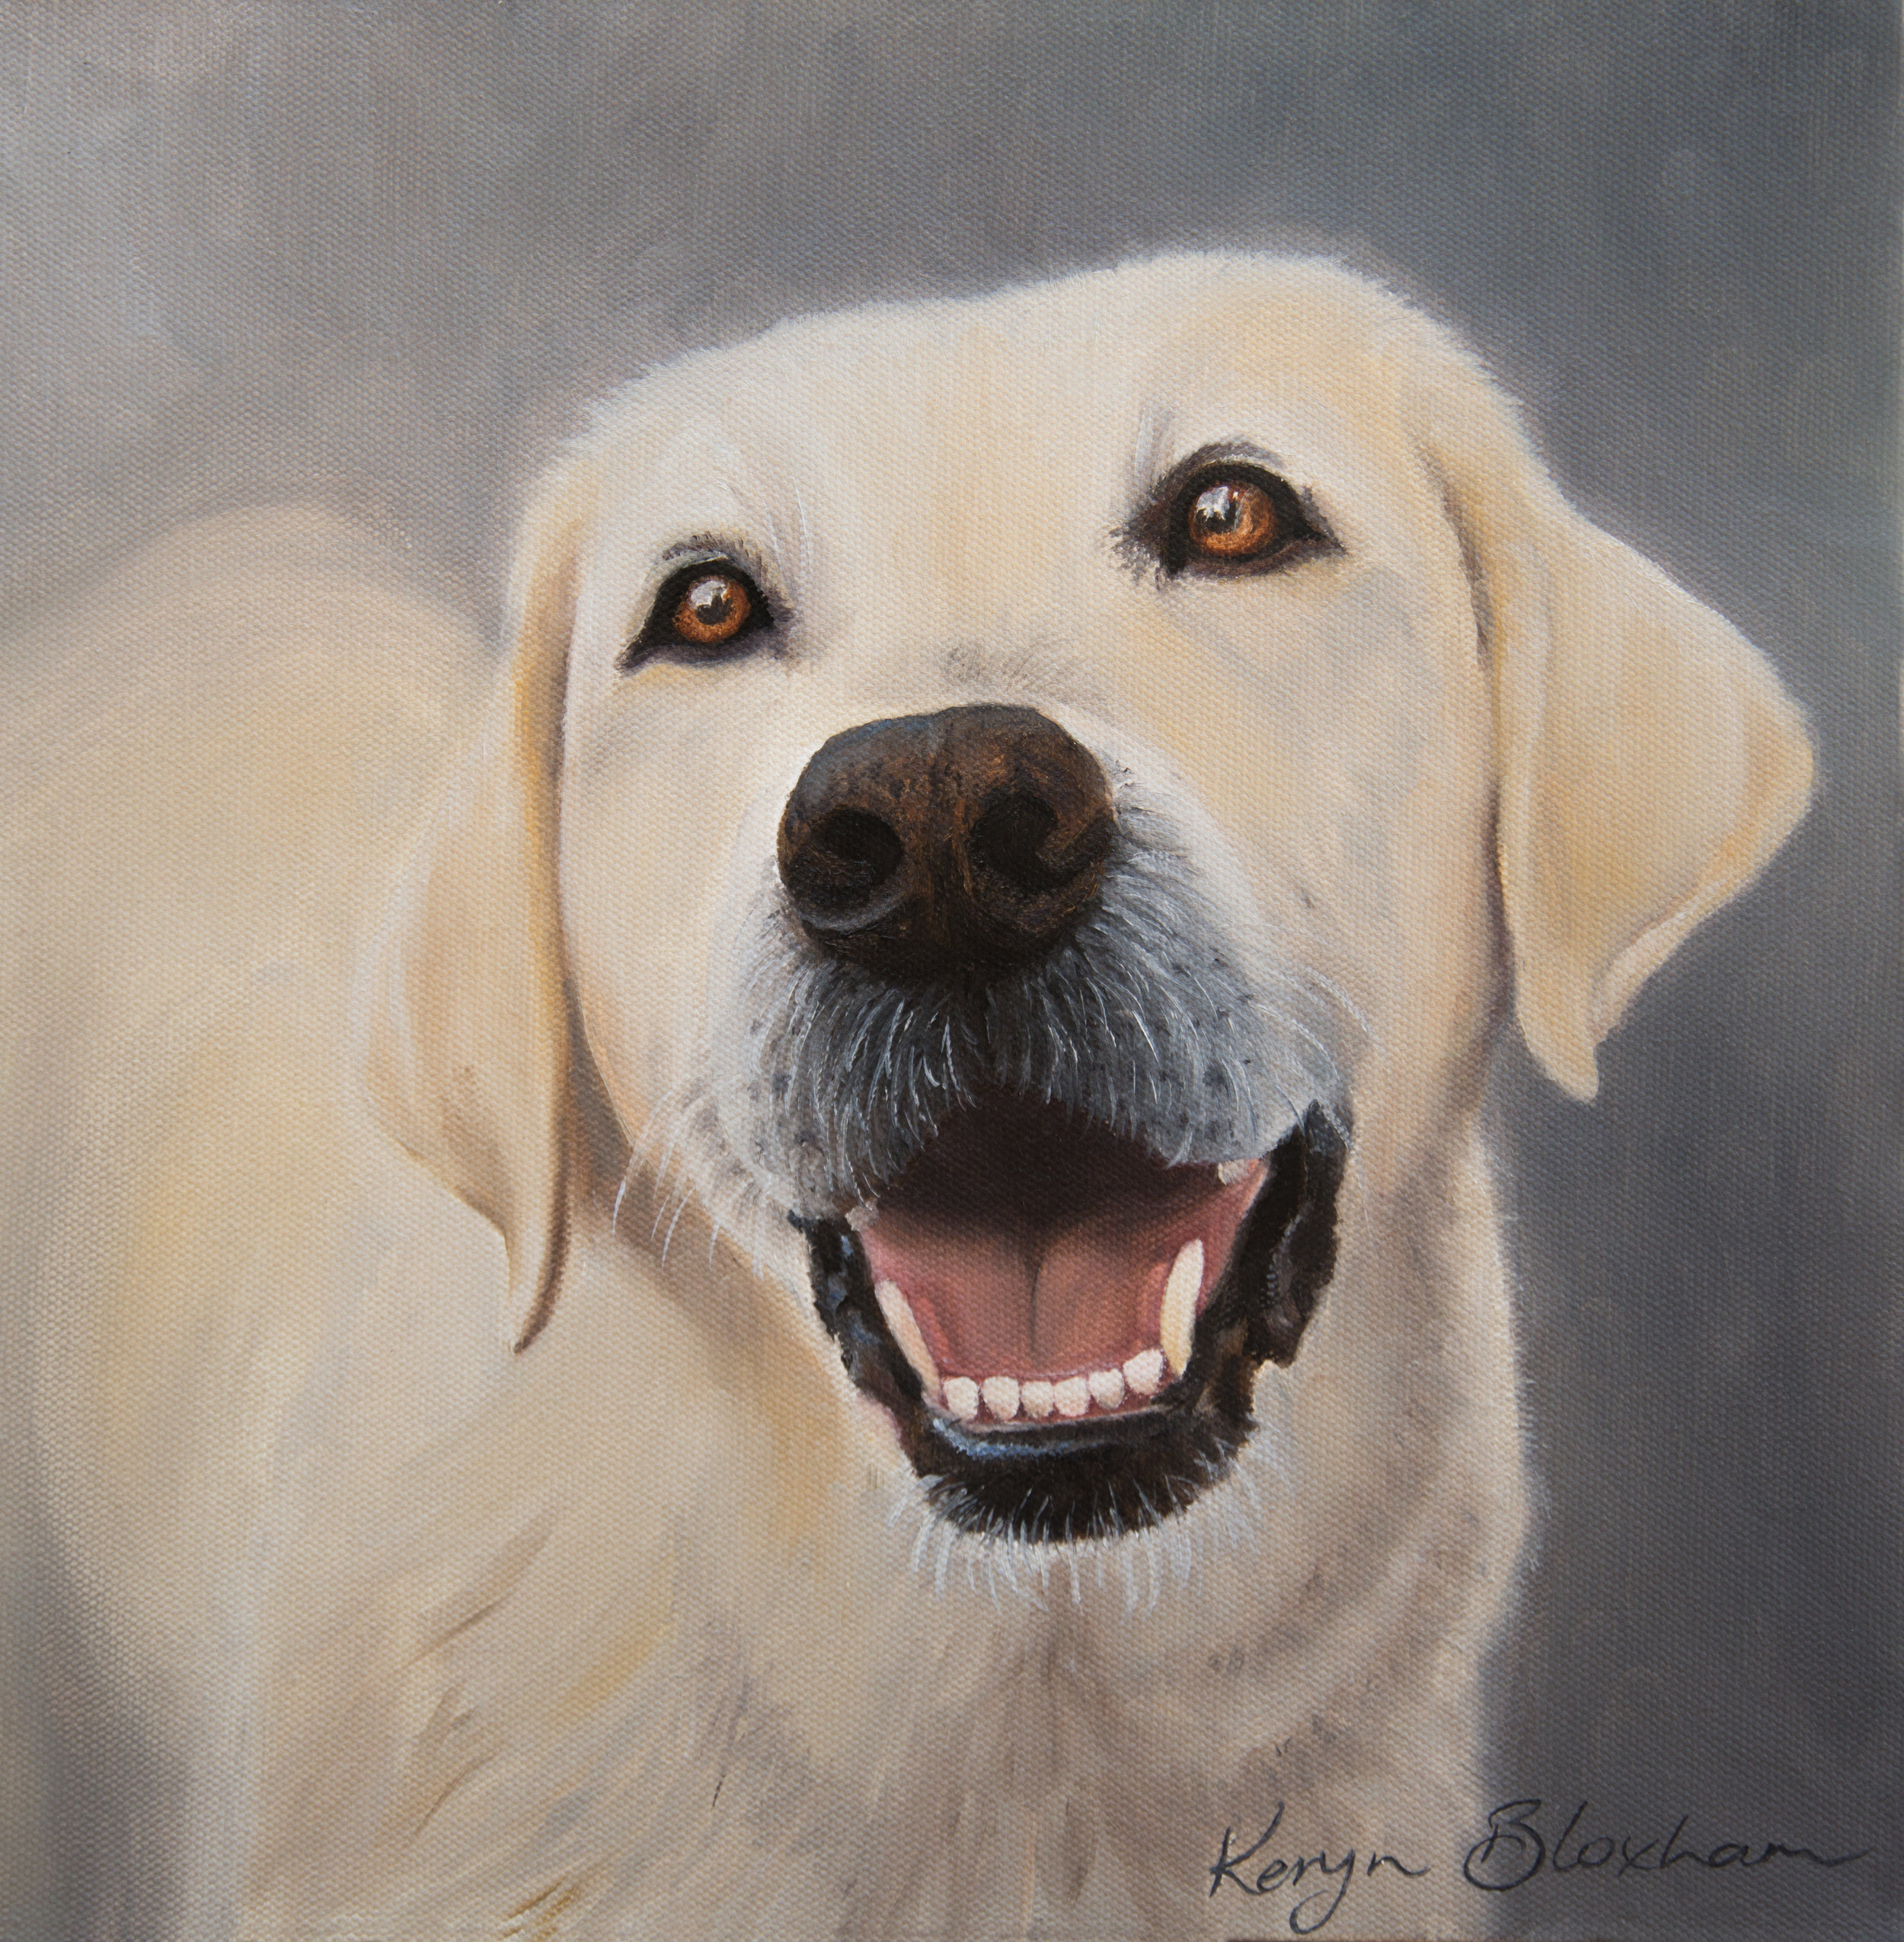 One of the pet portraits I have done lately